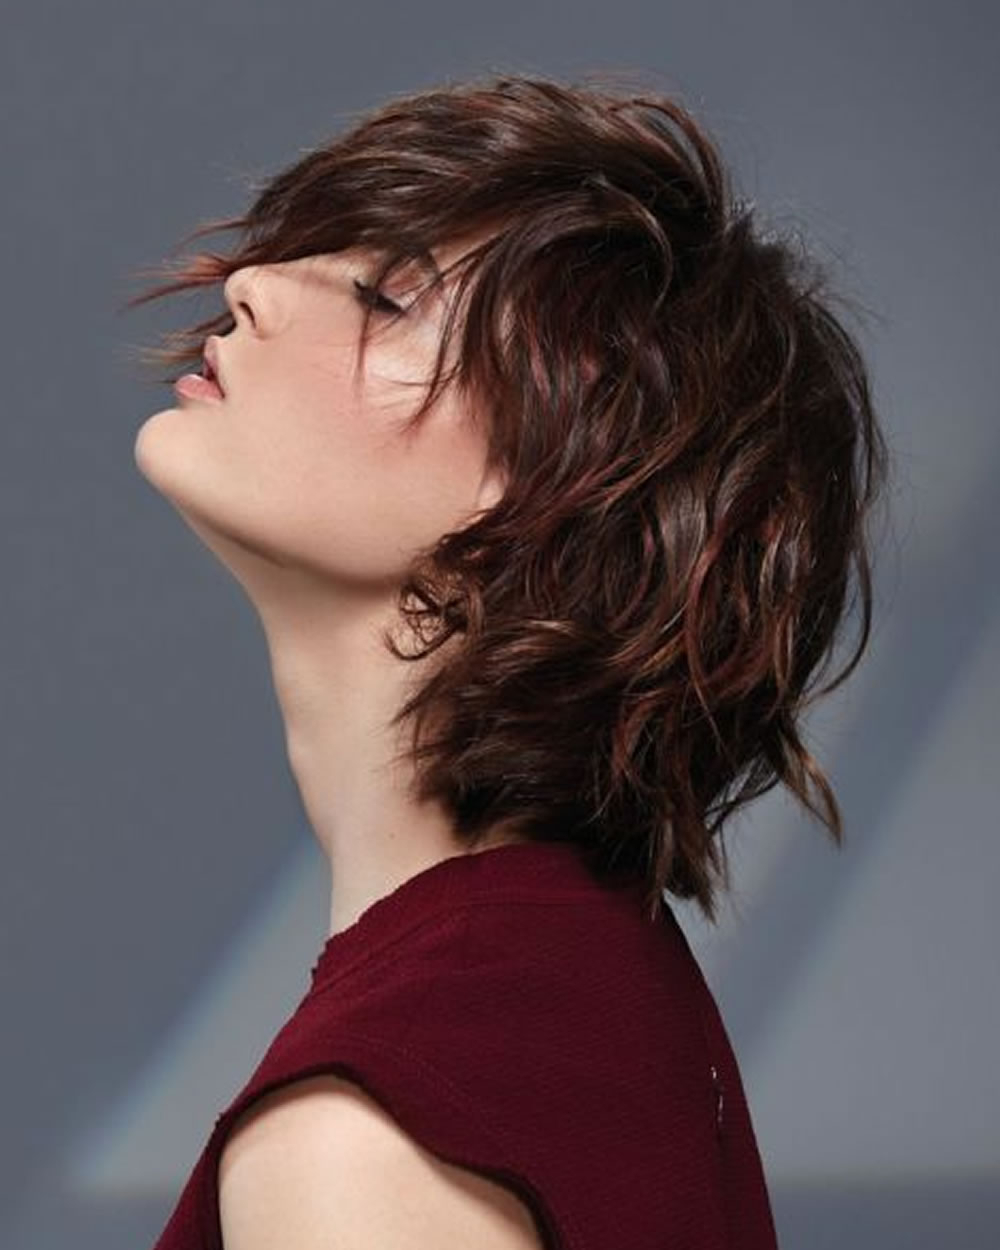 Hair Cuts : Bob Haircuts For Round Faces And Fine Hair Thick Female With Short Haircuts For Round Chubby Faces (View 13 of 25)